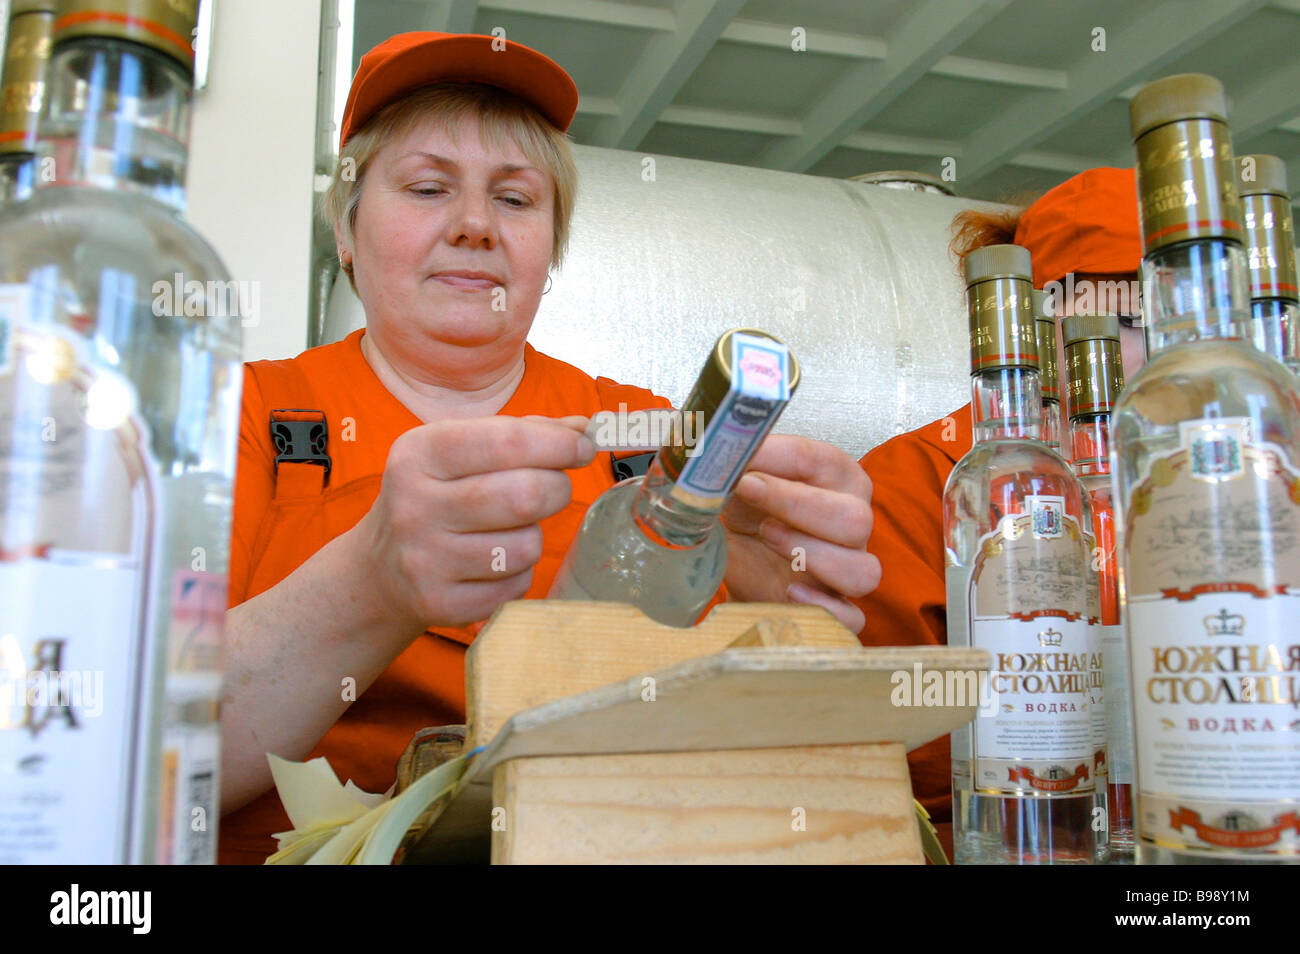 Pasting excise stamps and company labels on vodka bottles on a Yuzhnaya Stolitsa distillery conveyor line - Stock Image